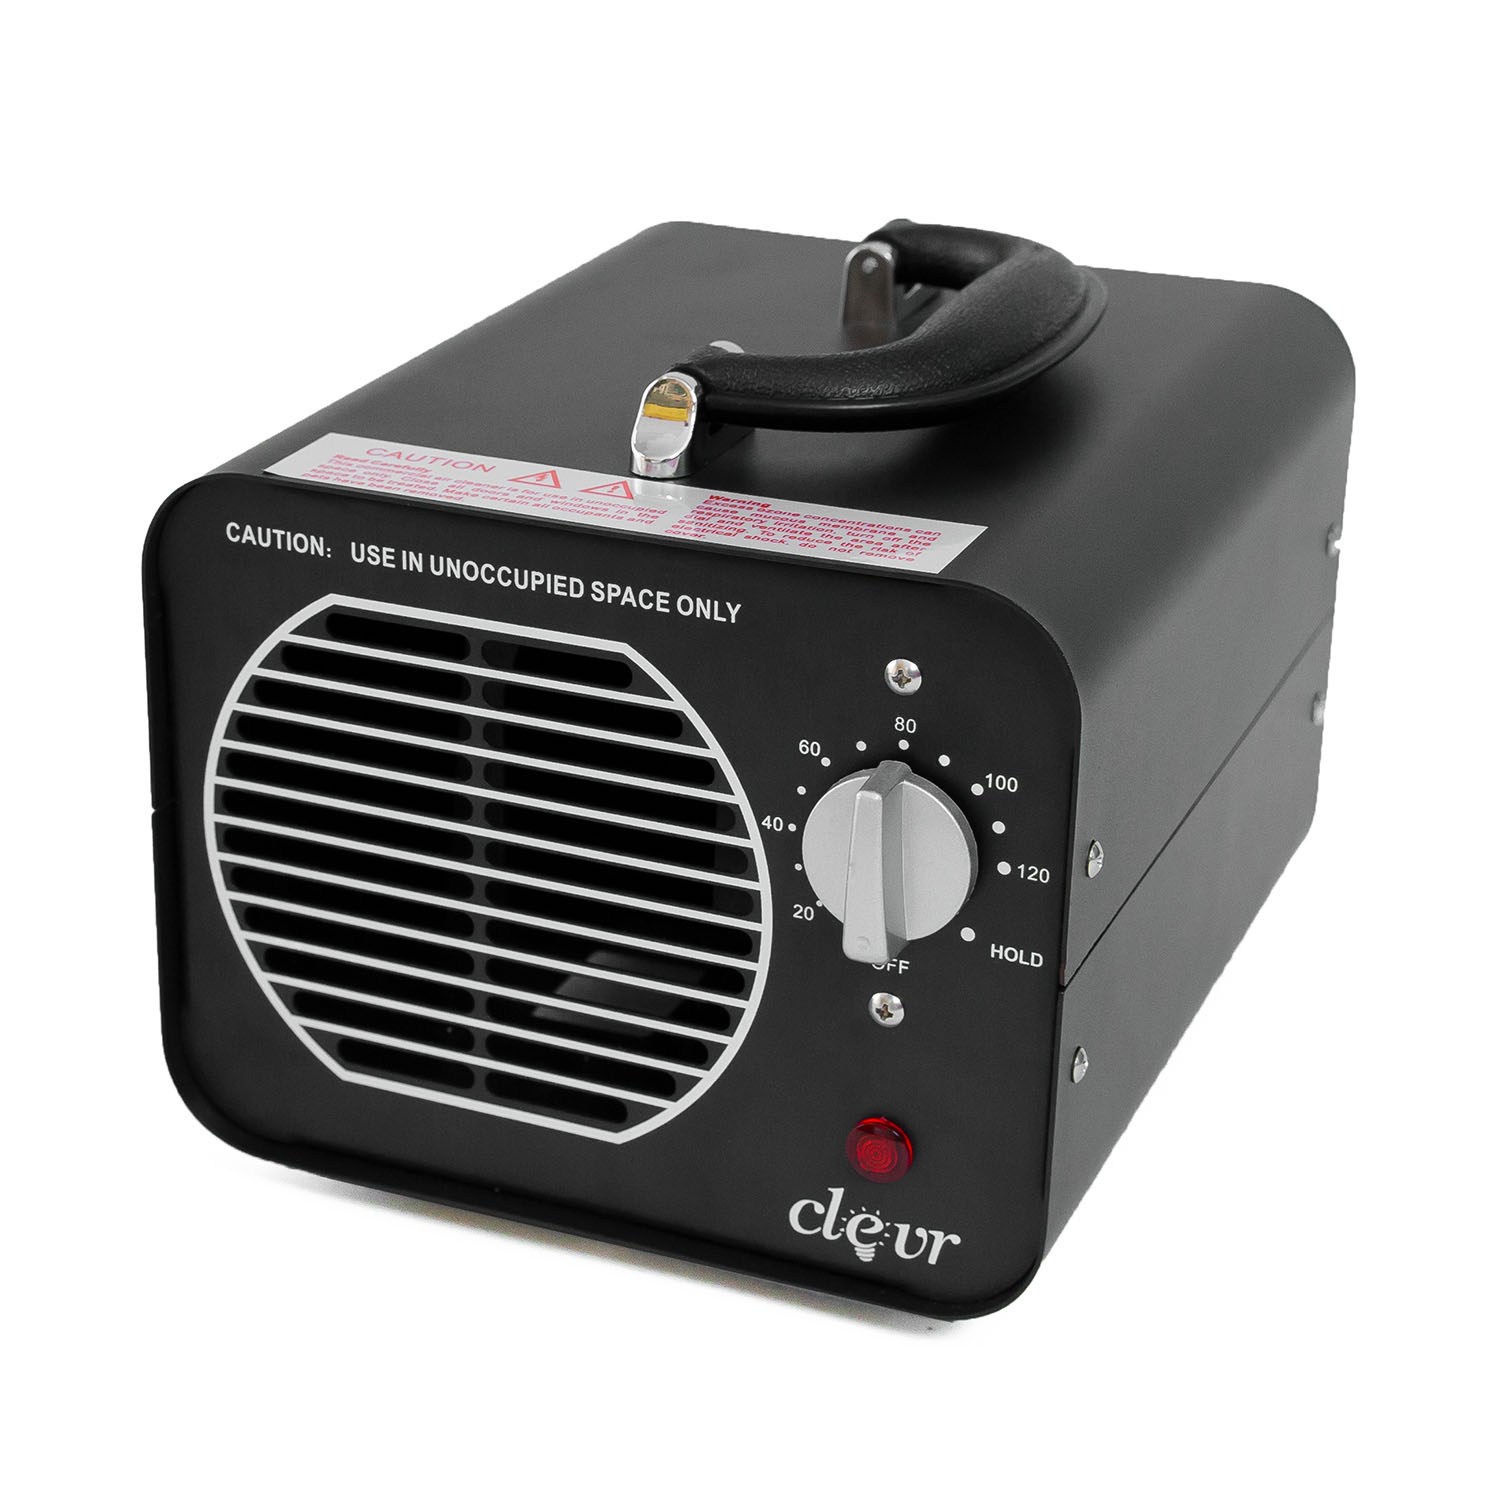 Clevr Commercial Ozone Generator Industrial Air Purifier Smoke Odor 6000mg/h | 1 YEAR LIMITED WARRANTY